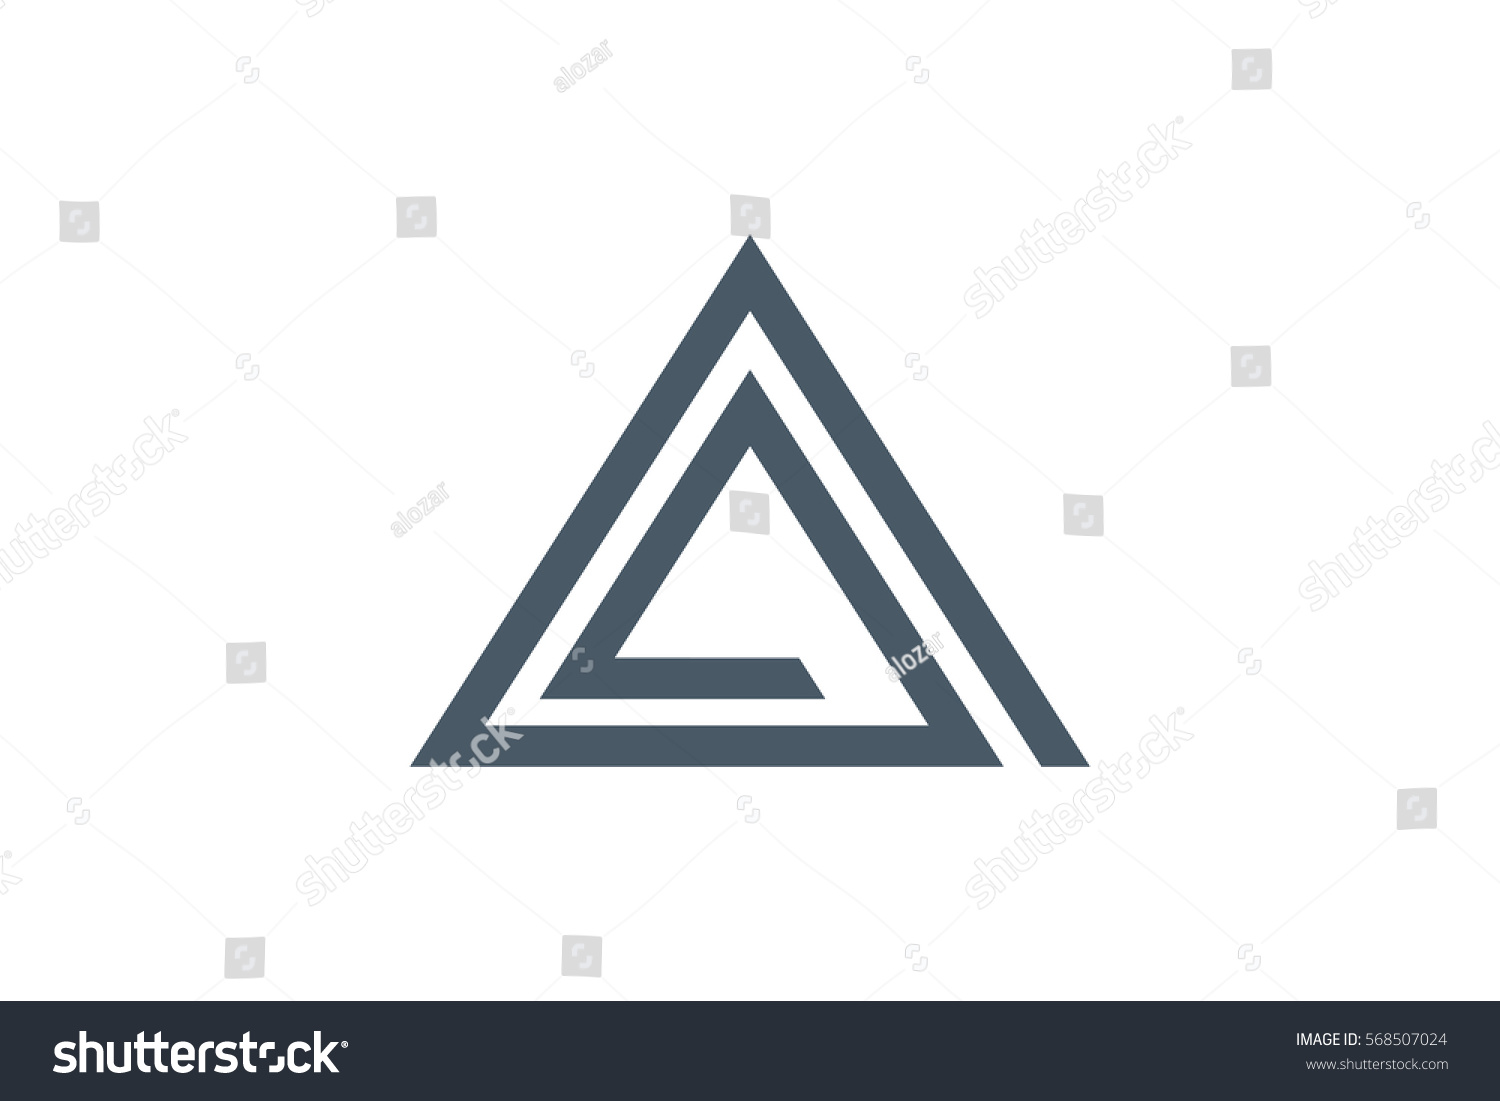 The Letter A Logo Design On Stylish Graphic